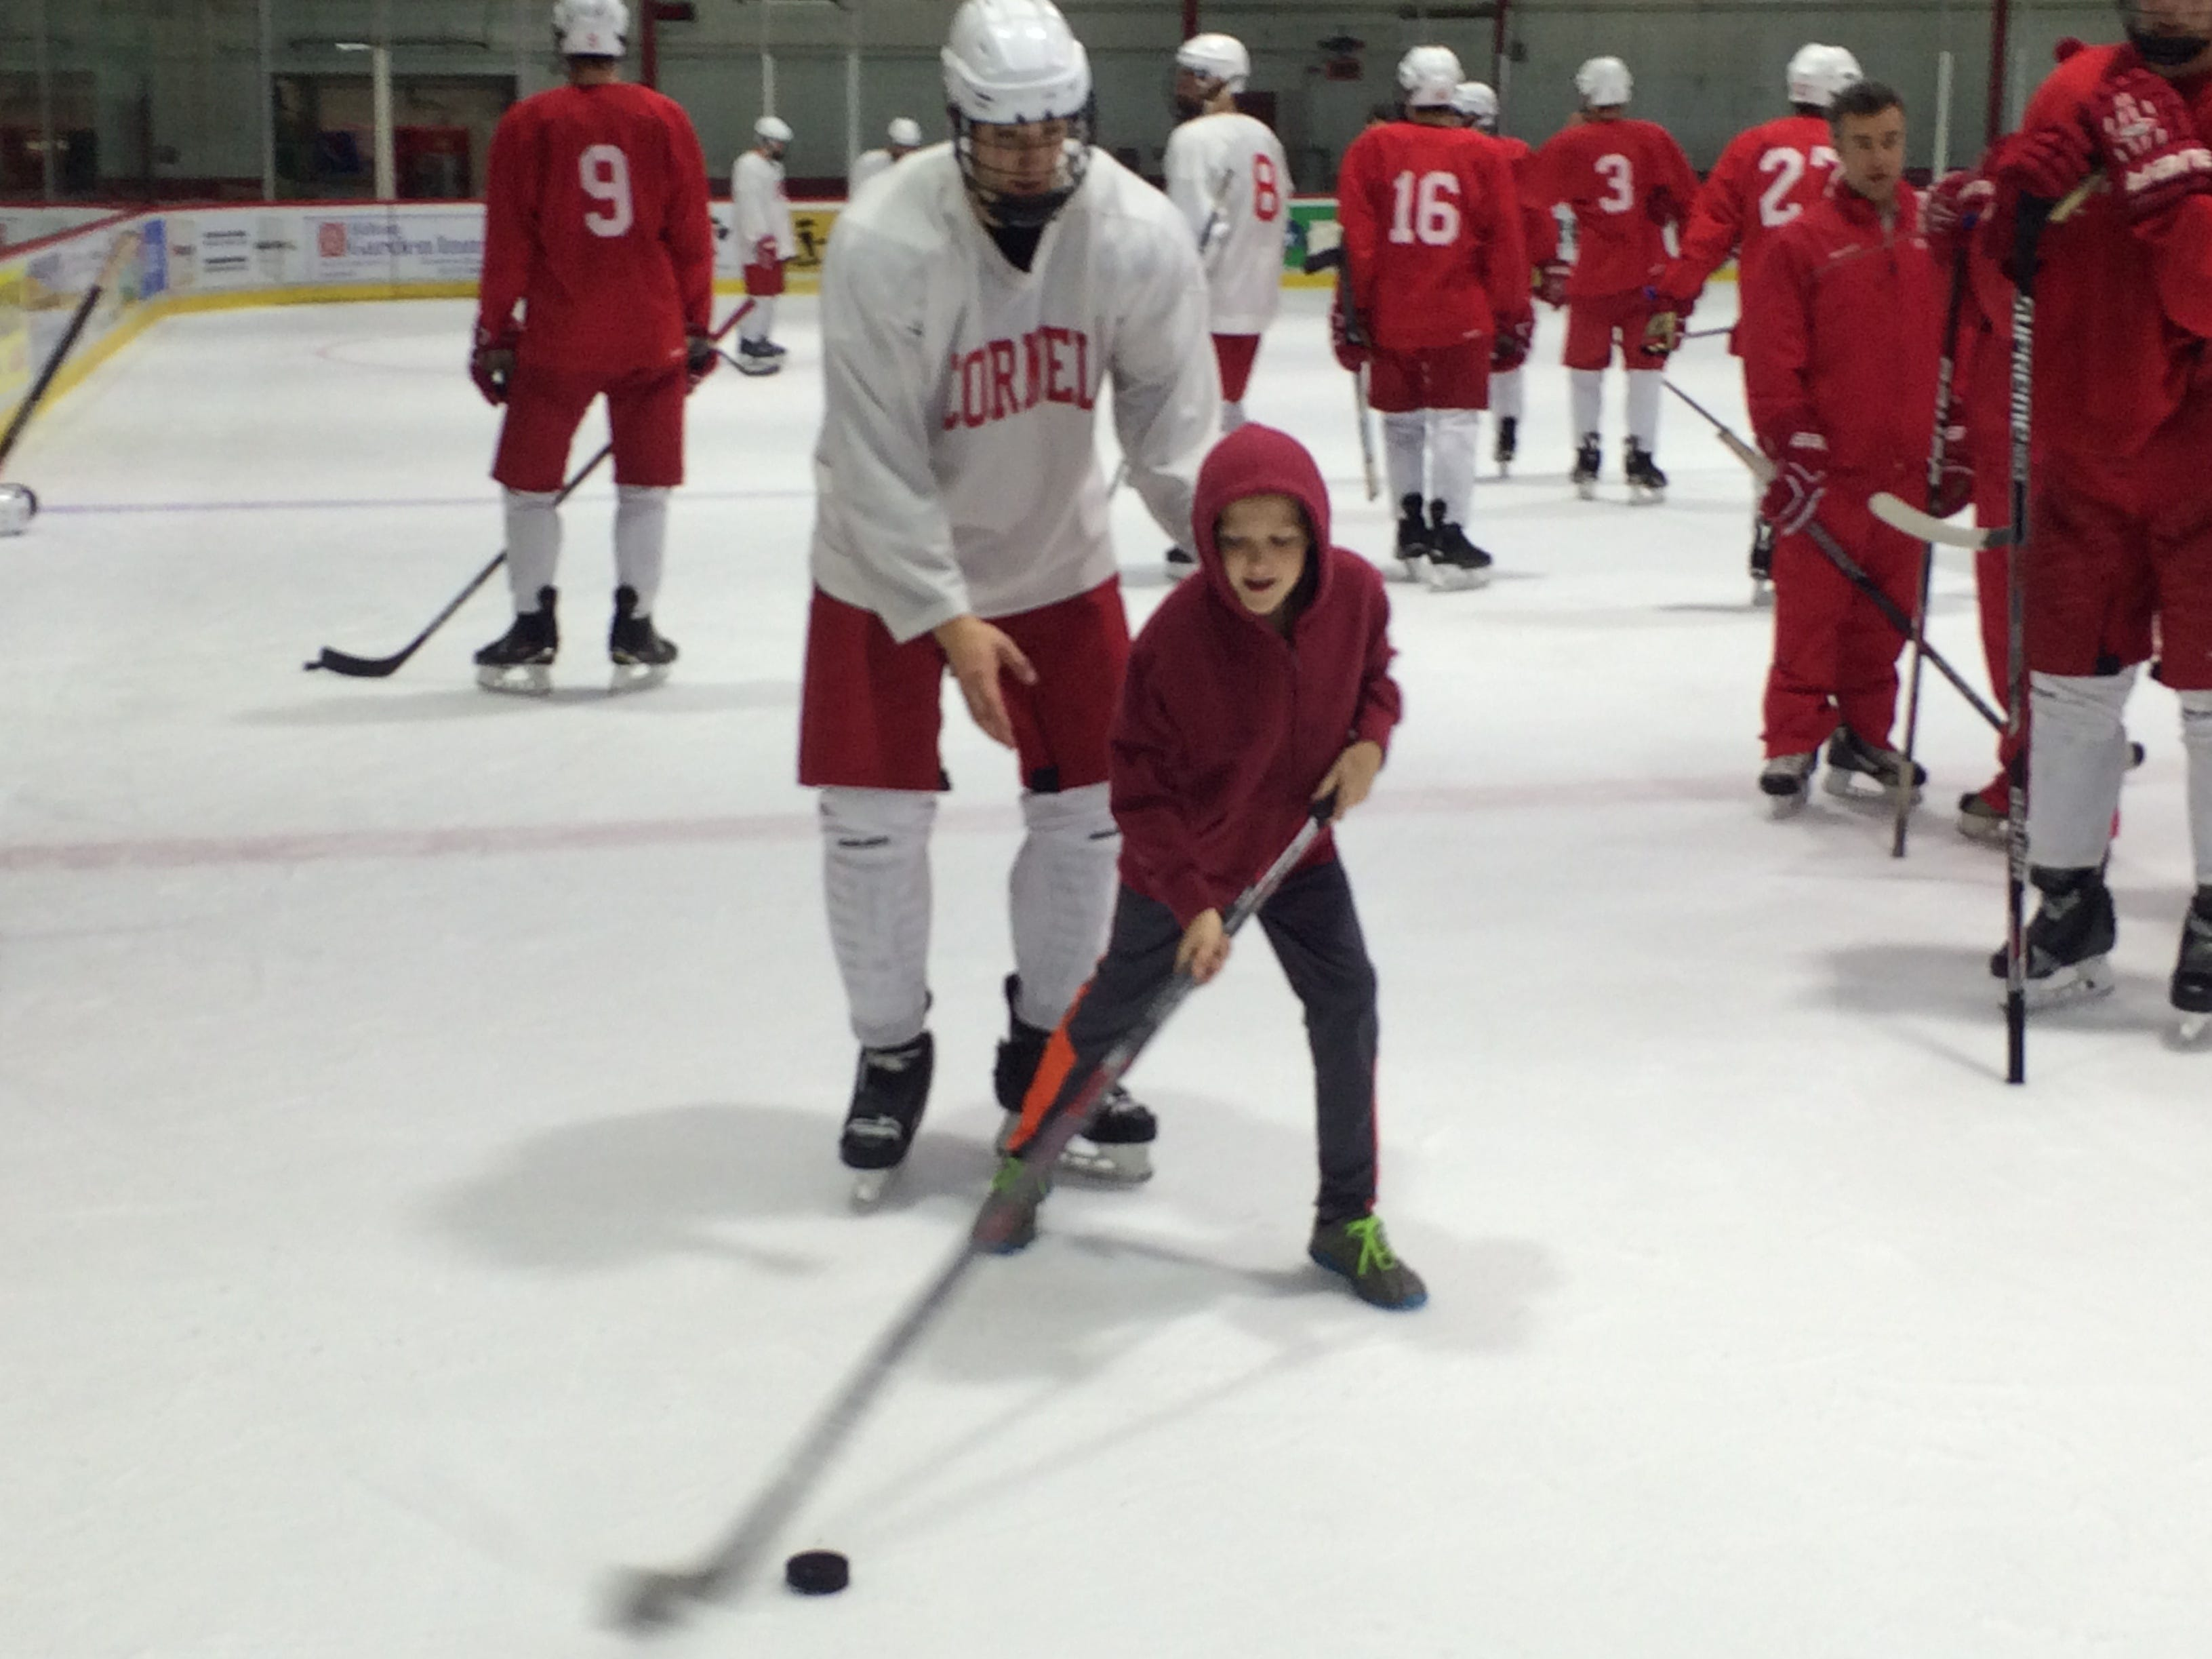 2015: Newark Valley resident Brody Hines, 9, gets to test his skills on the ice with Cornell University men's hockey players following a practice at Lynah Rink on Tuesday, Nov. 10, 2015.